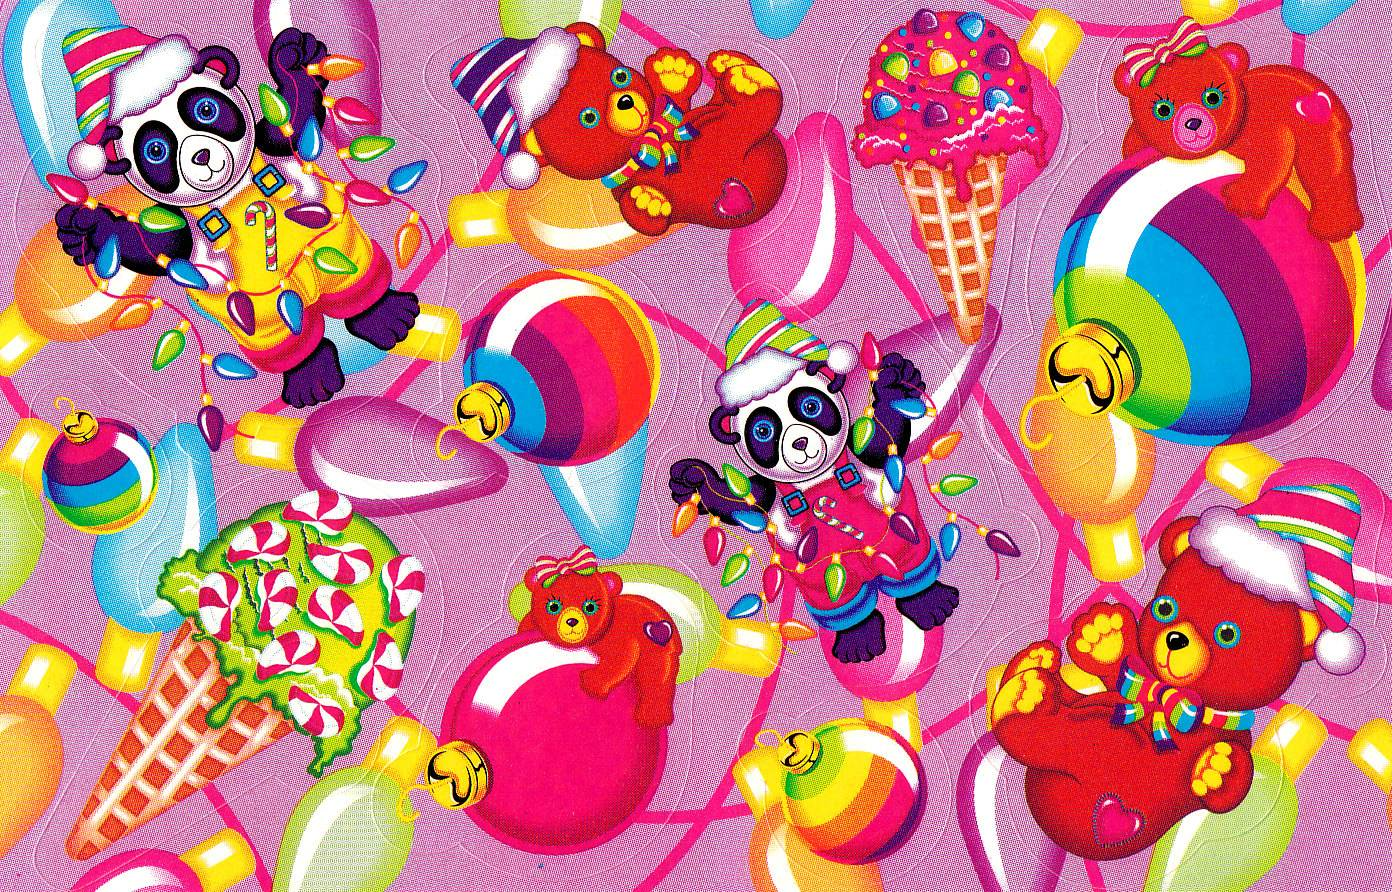 Gallery For gt Lisa Frank Wallpaper